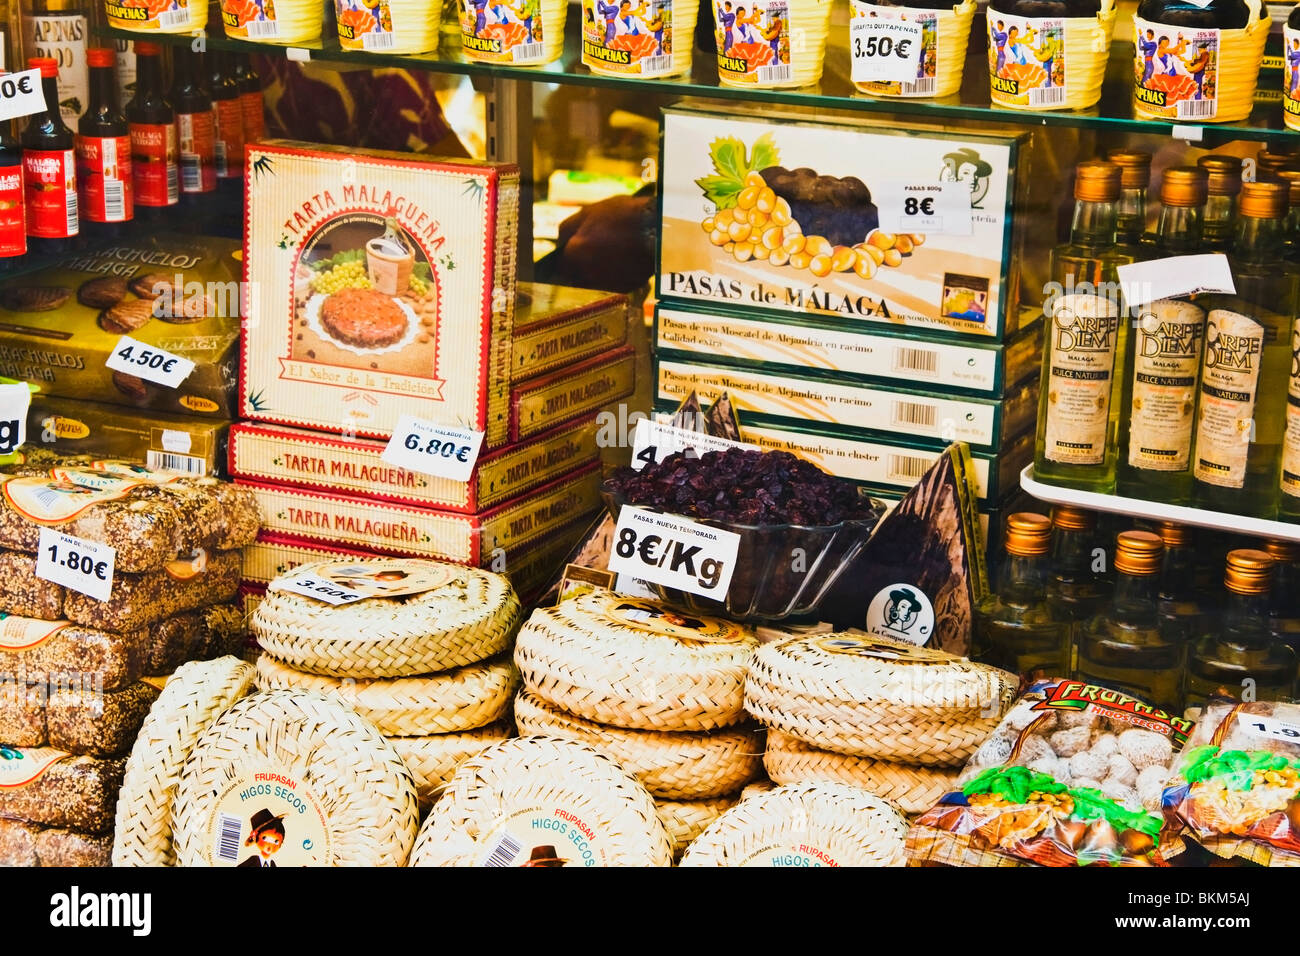 Costa Del Sol, Malaga, Spain; Wines, Dried Fruit And Cake Displayed In A Malaga Shop Window - Stock Image